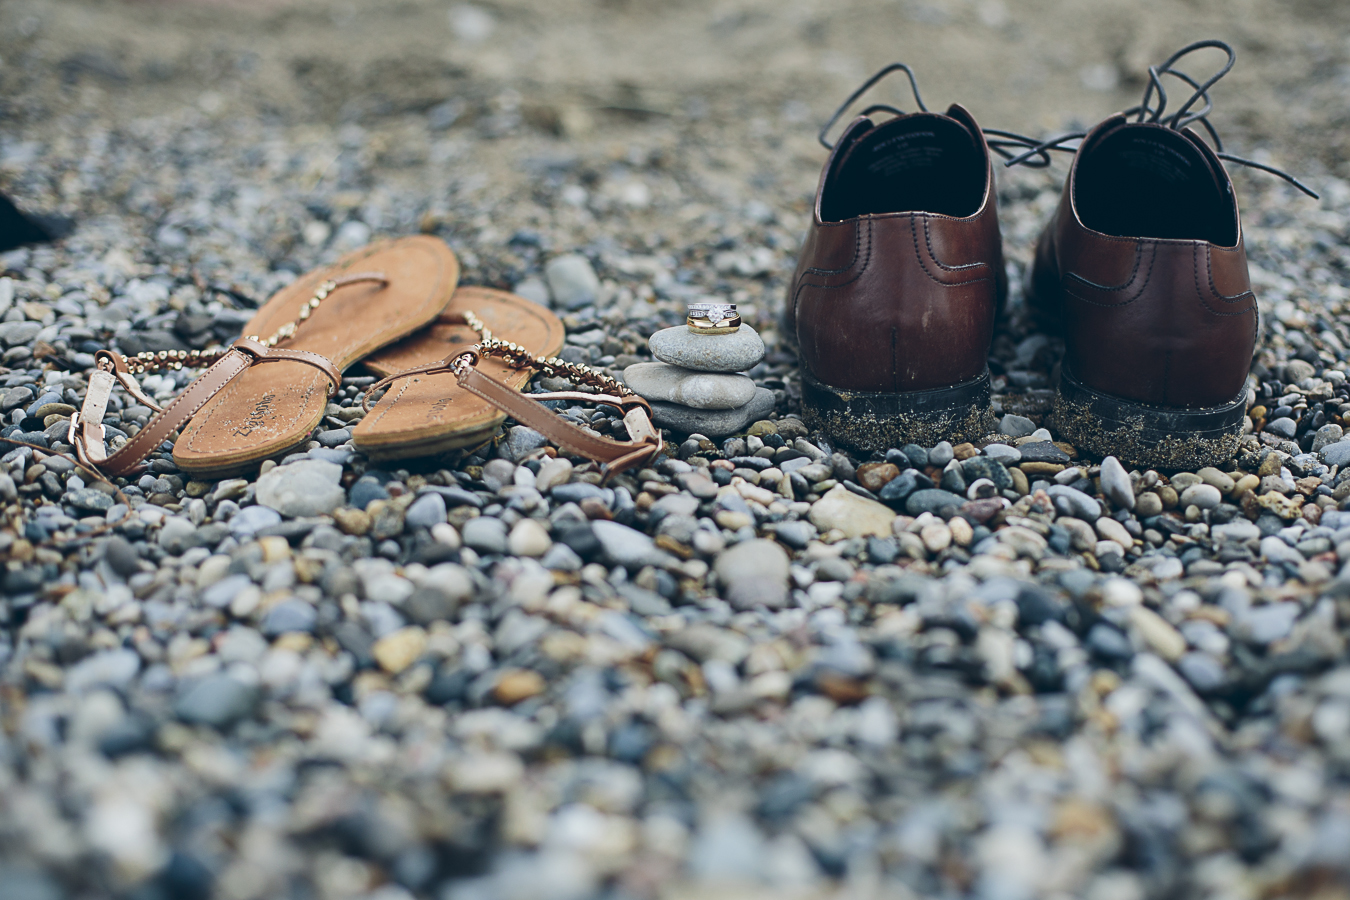 details image of shoes and rings on beach